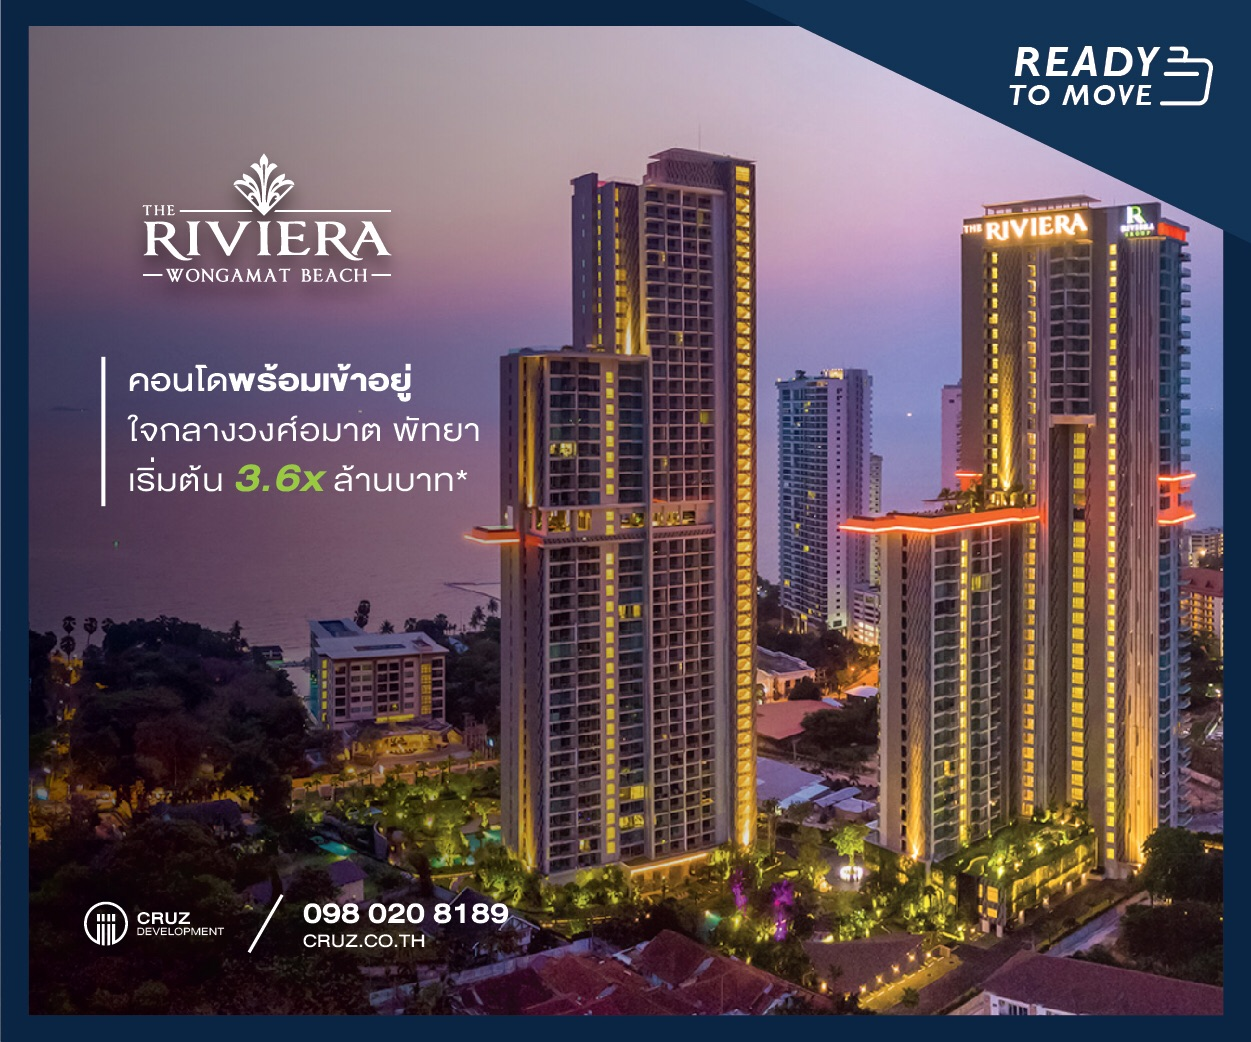 The Riviera Wongamat